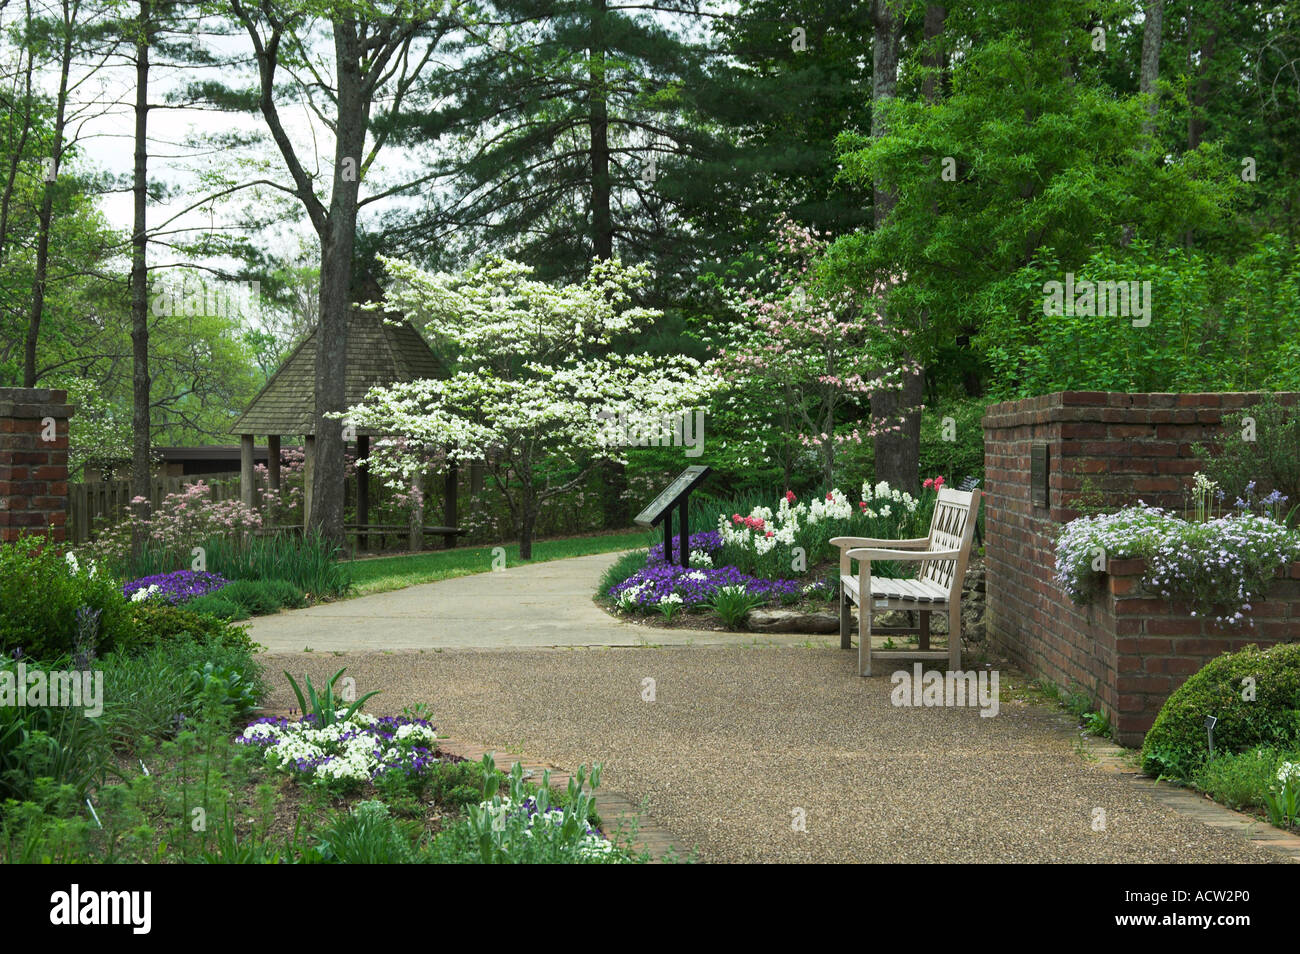 Spring Flowers In Bloom And A Walkway At The Cheekwood Botanical Gardens In  Nashville Tennessee USA